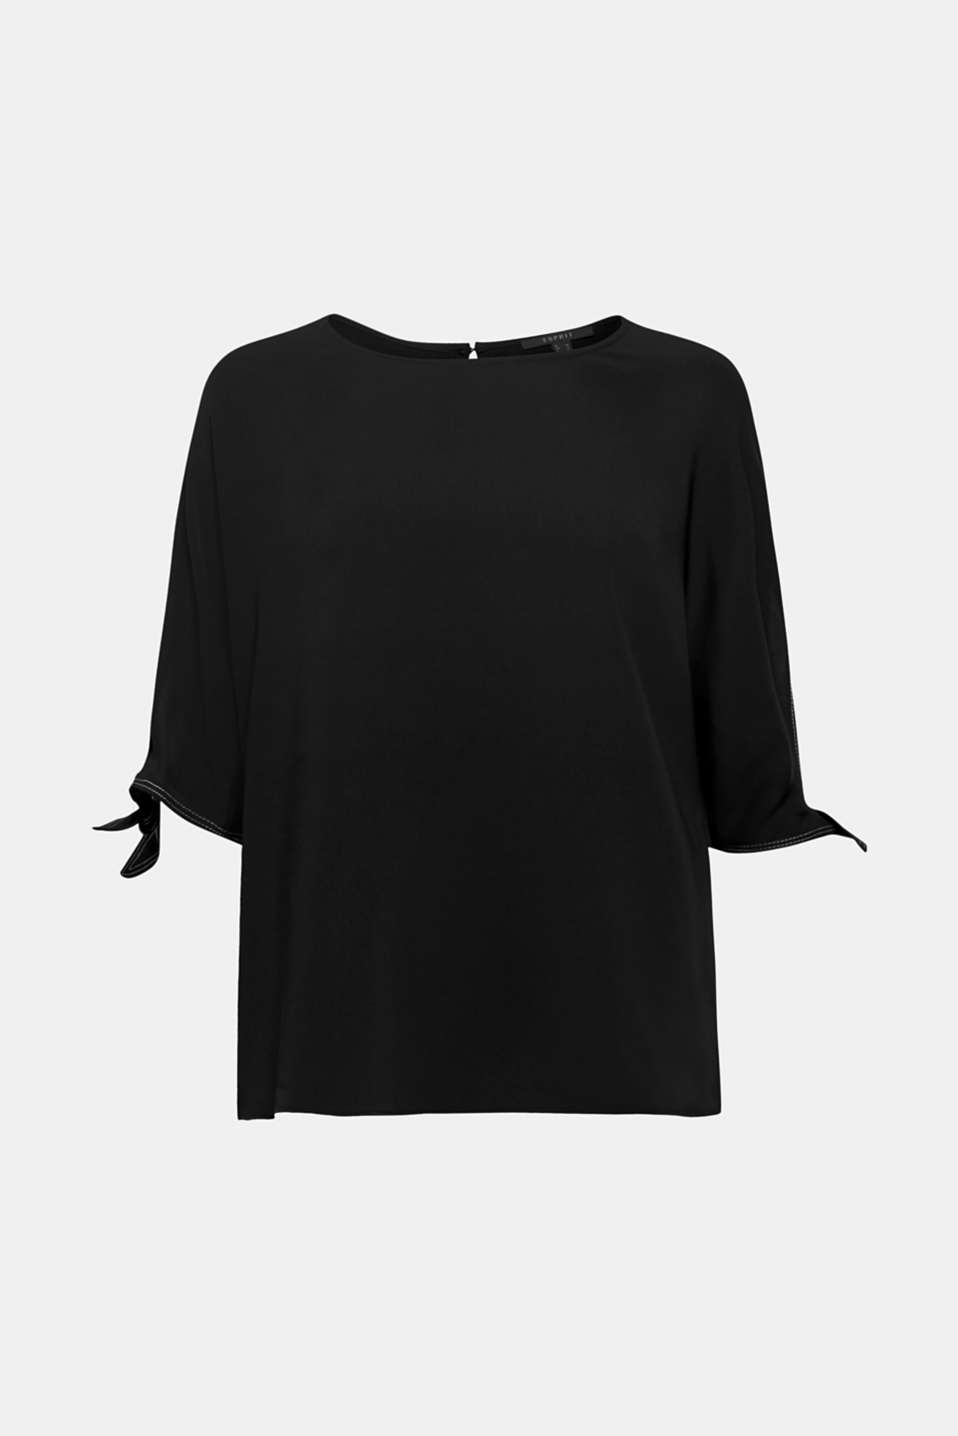 Esprit - Blouse top in a layered look